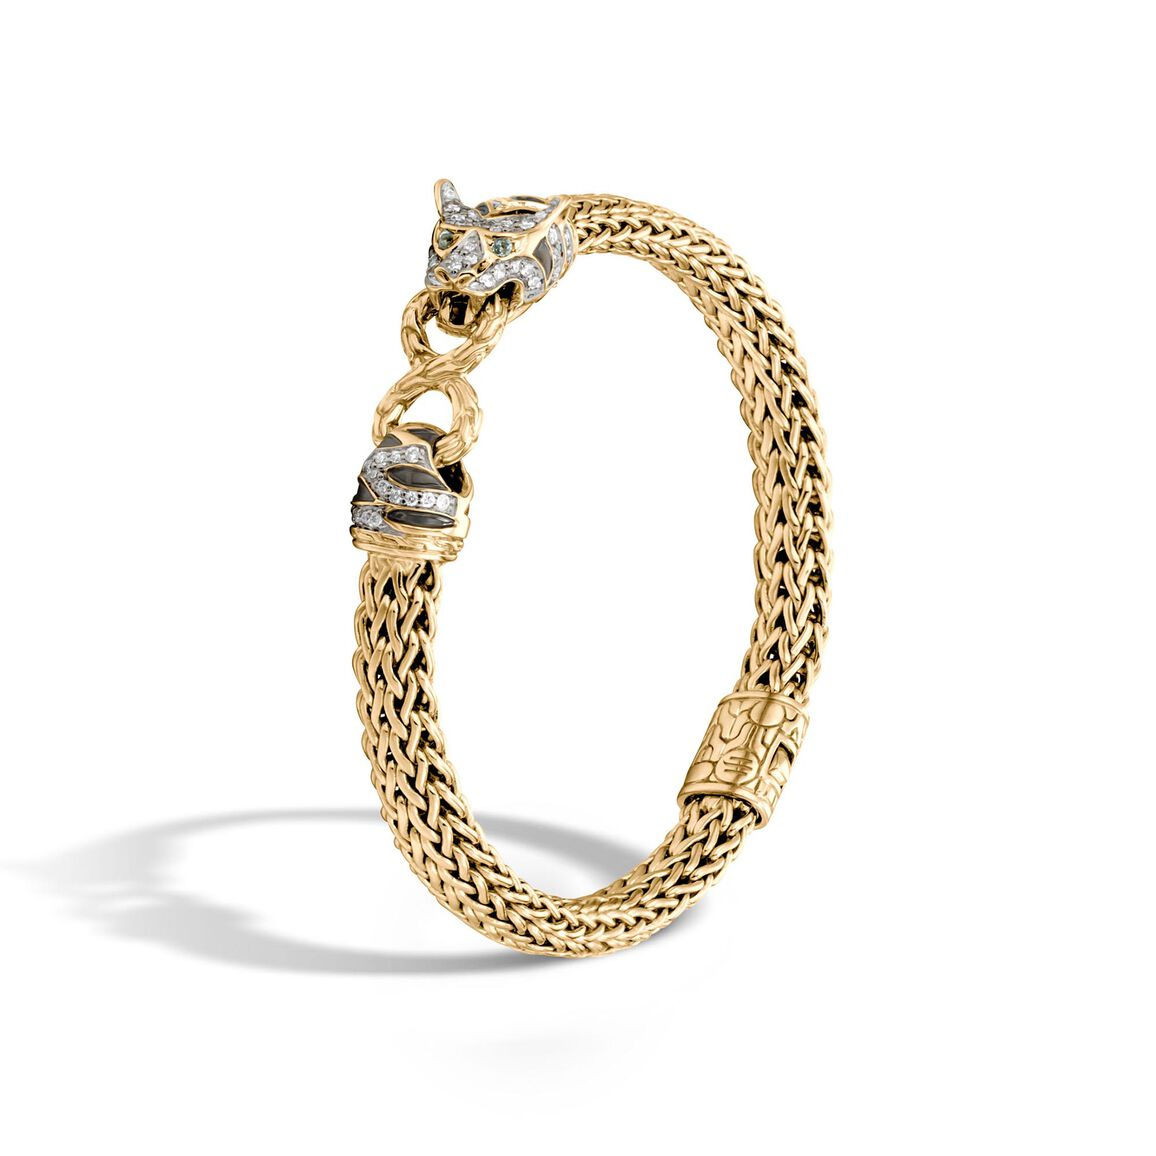 Legends Macan 6.5MM Station Bracelet, 18K Gold with Diamonds